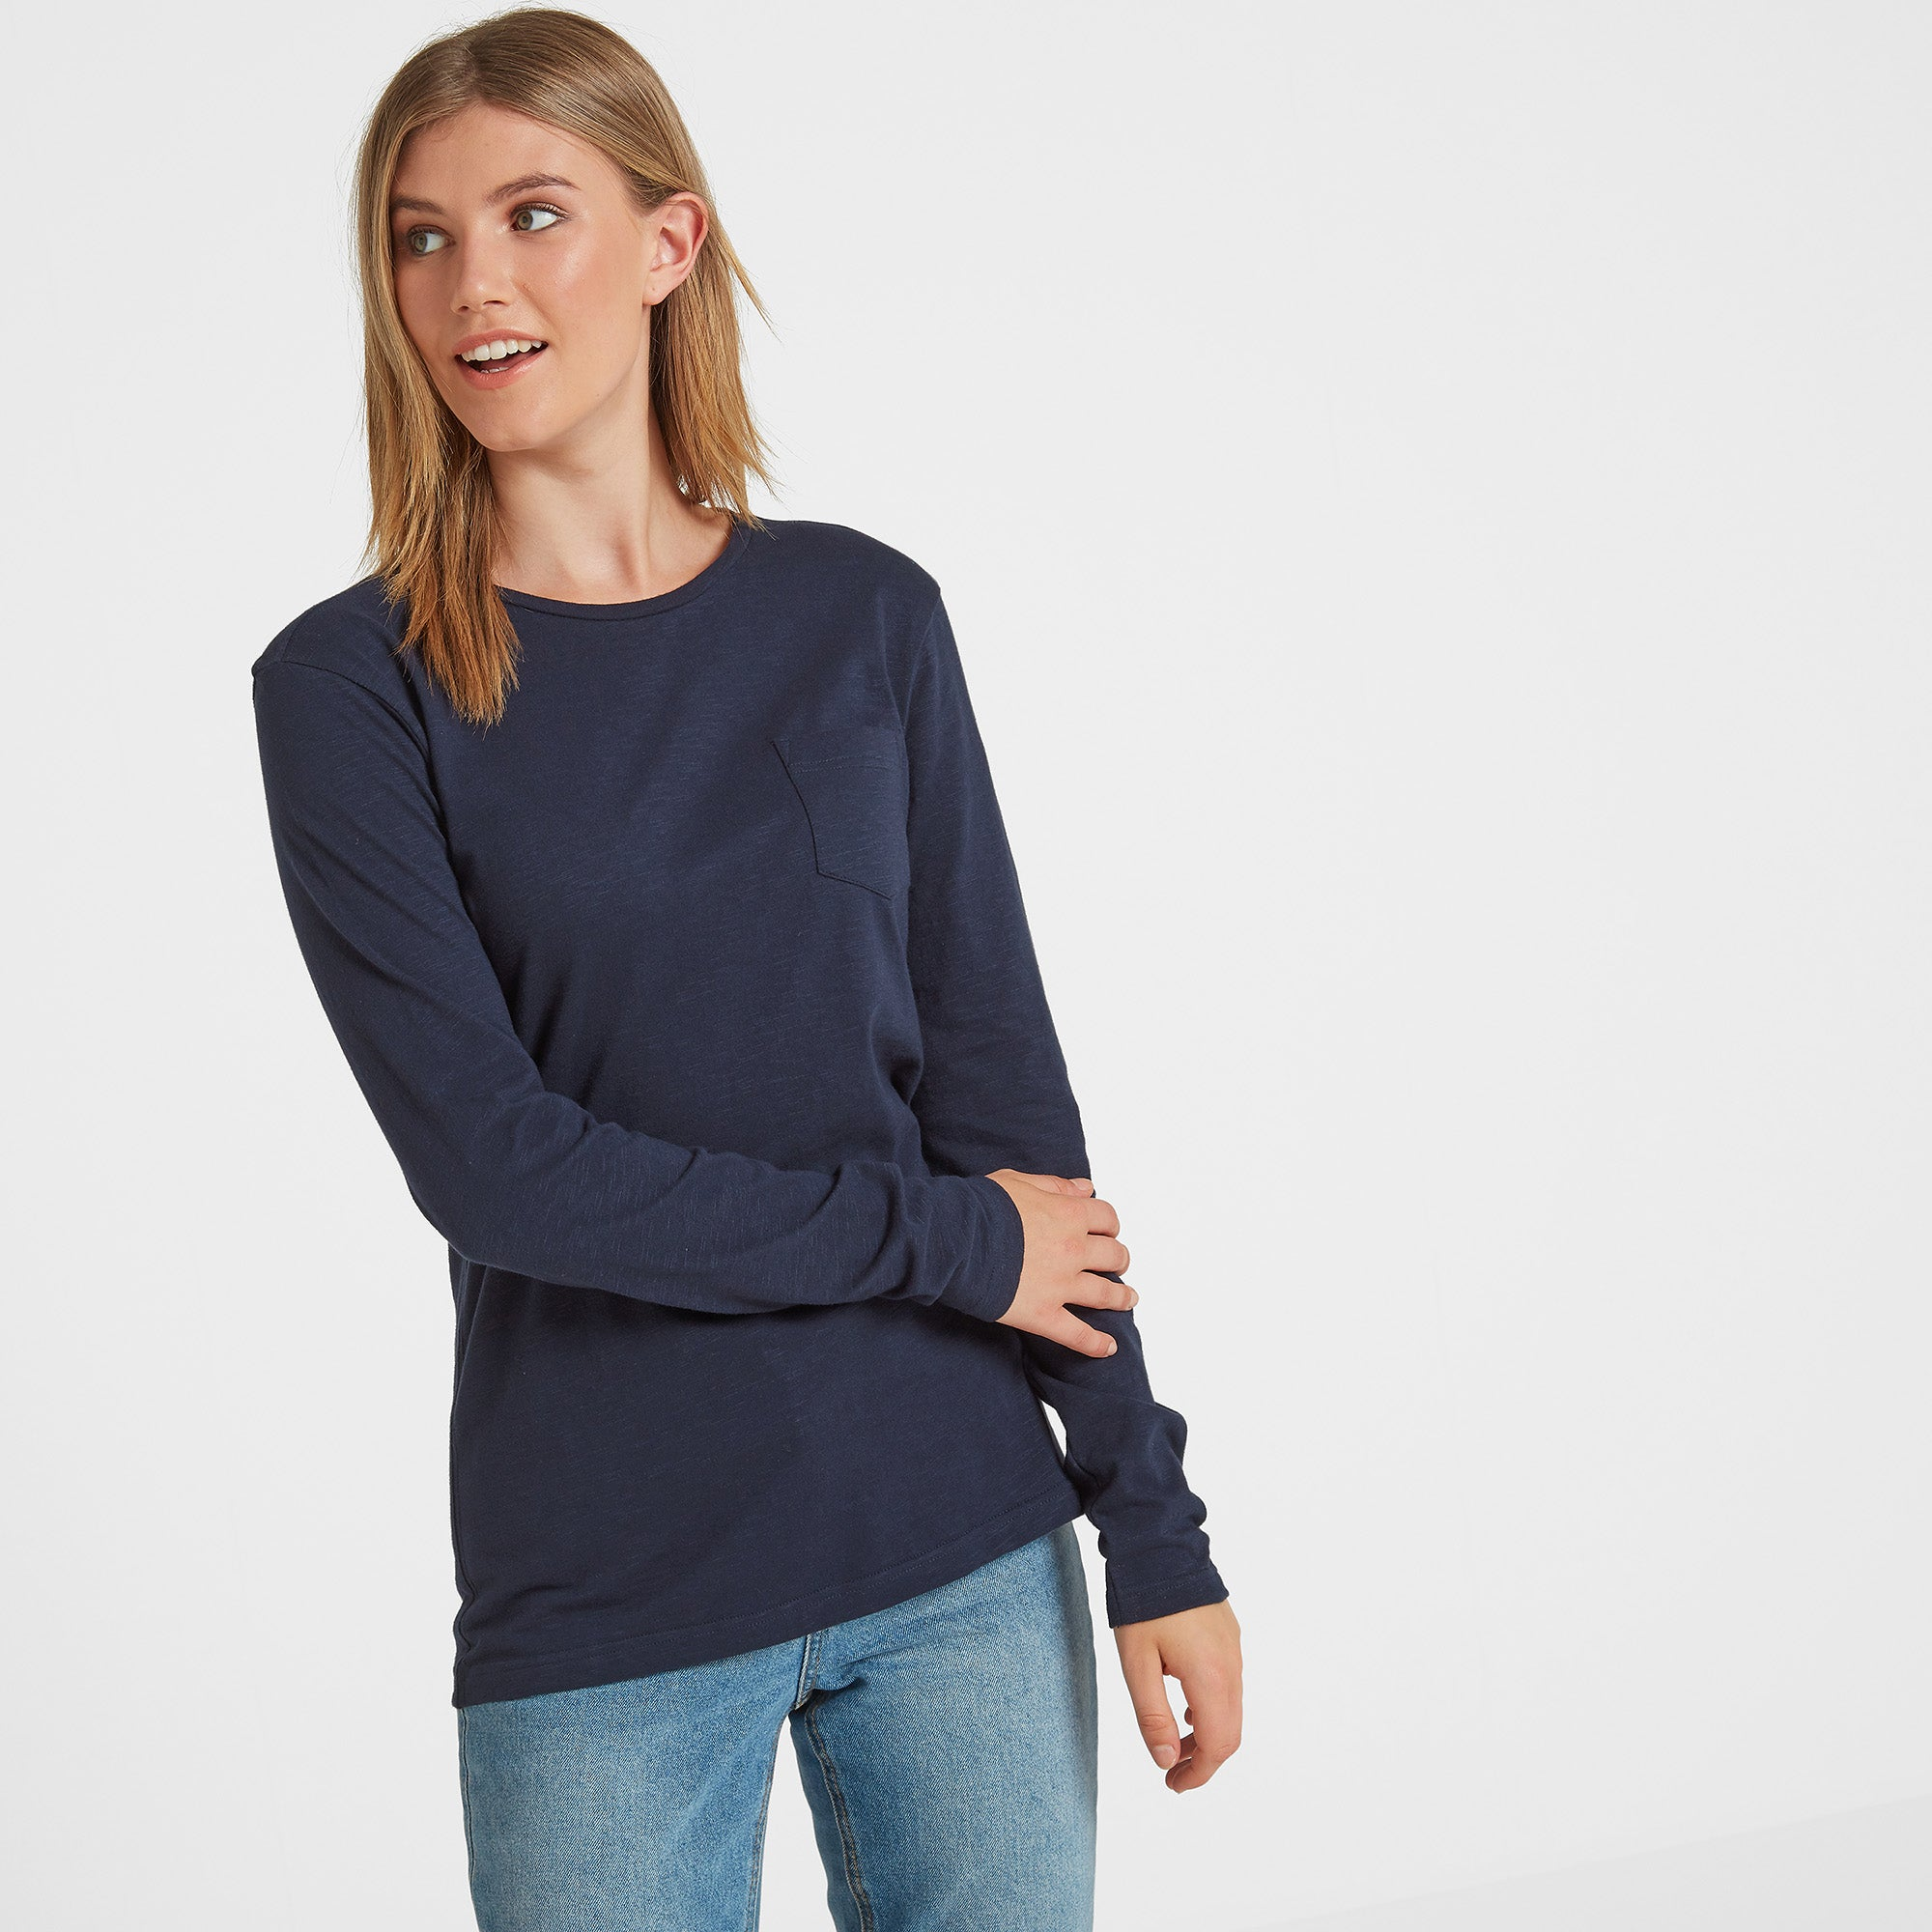 Askwith Womens Long Sleeve Pocket T-Shirt - Navy